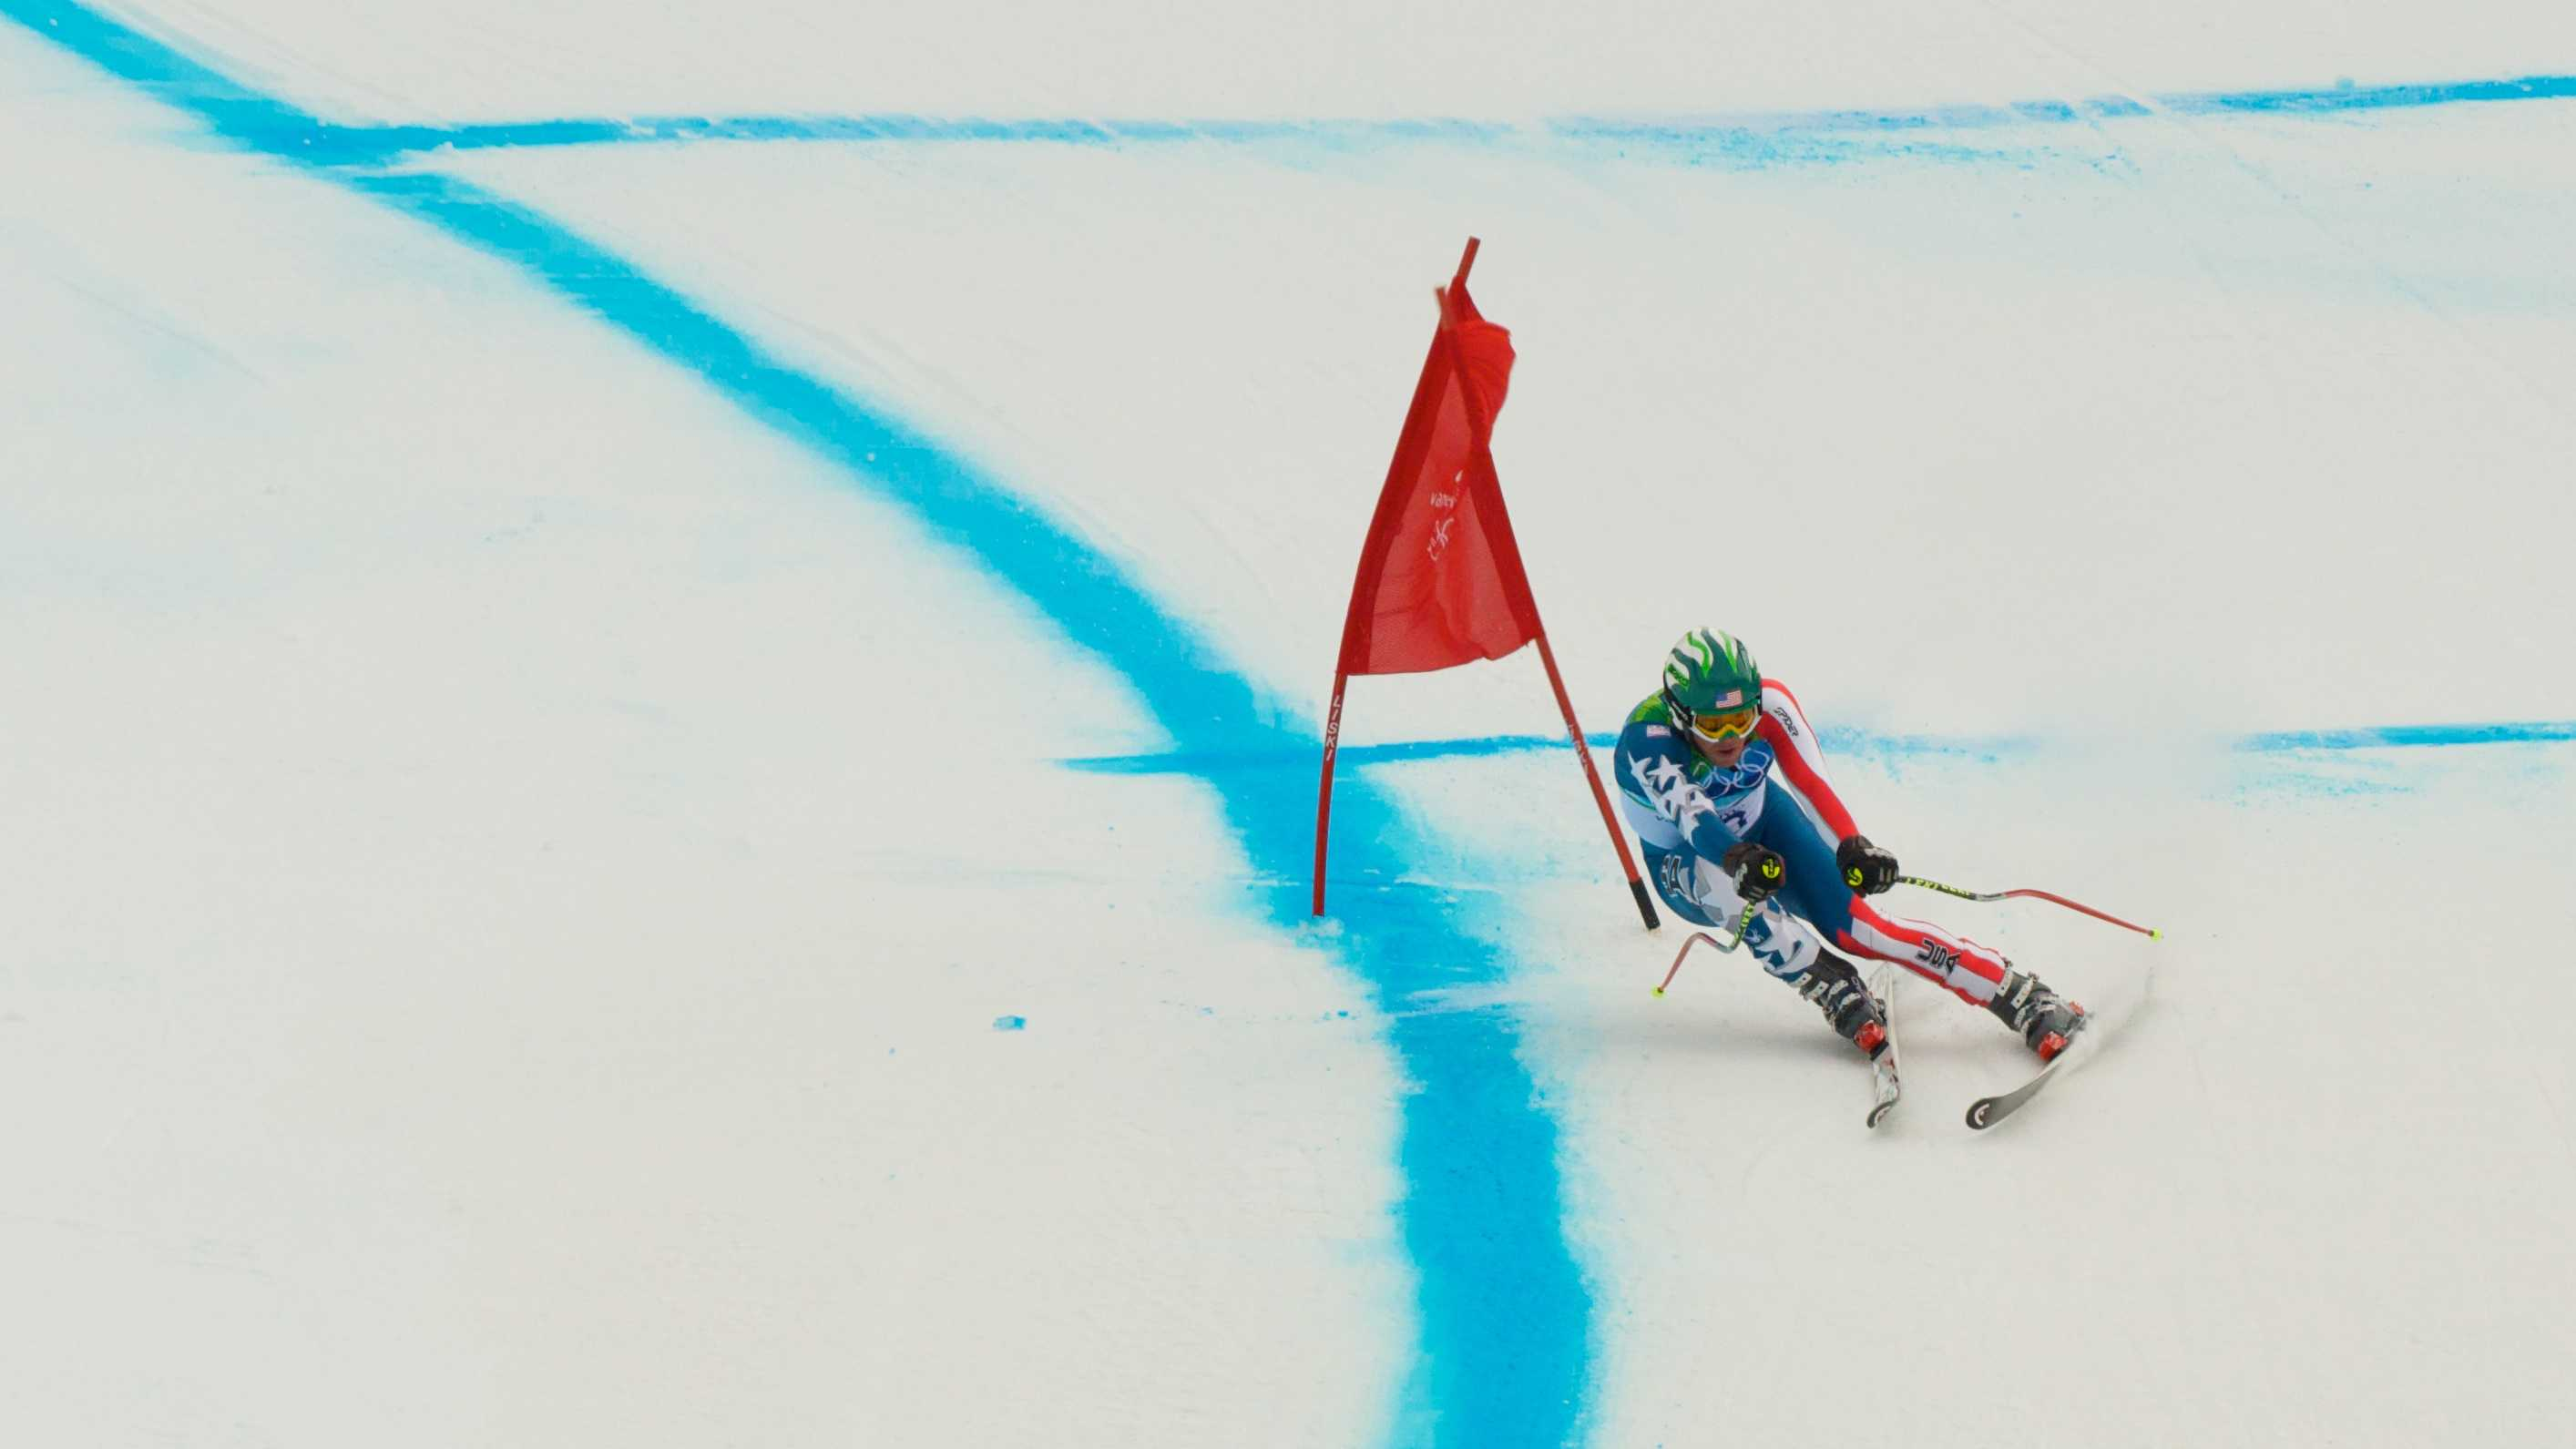 Bode Miller in the downhill at the 2010 Winter Olympics.